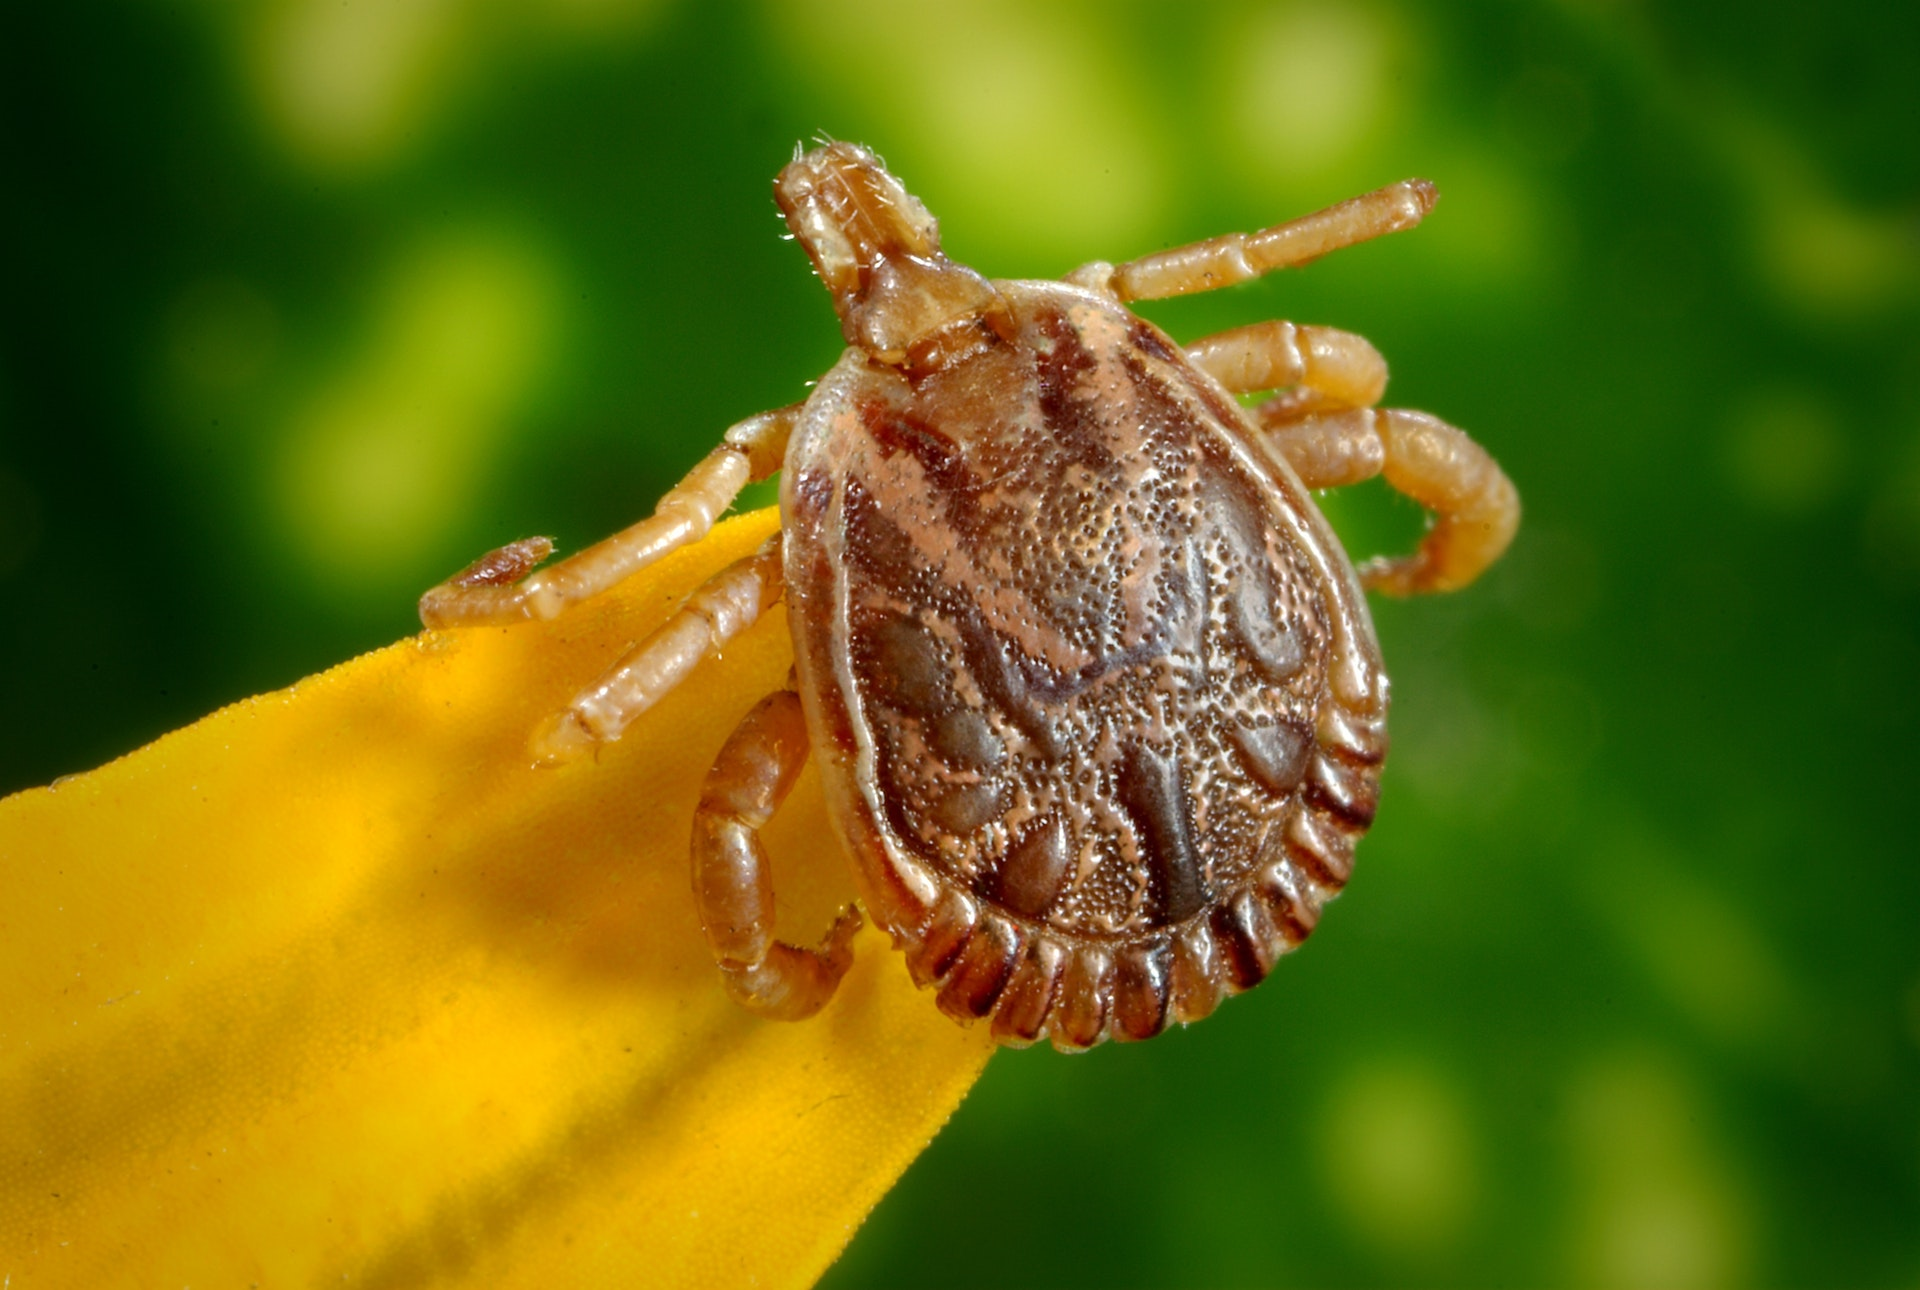 Lyme Disease: Same Symptoms, Different Story